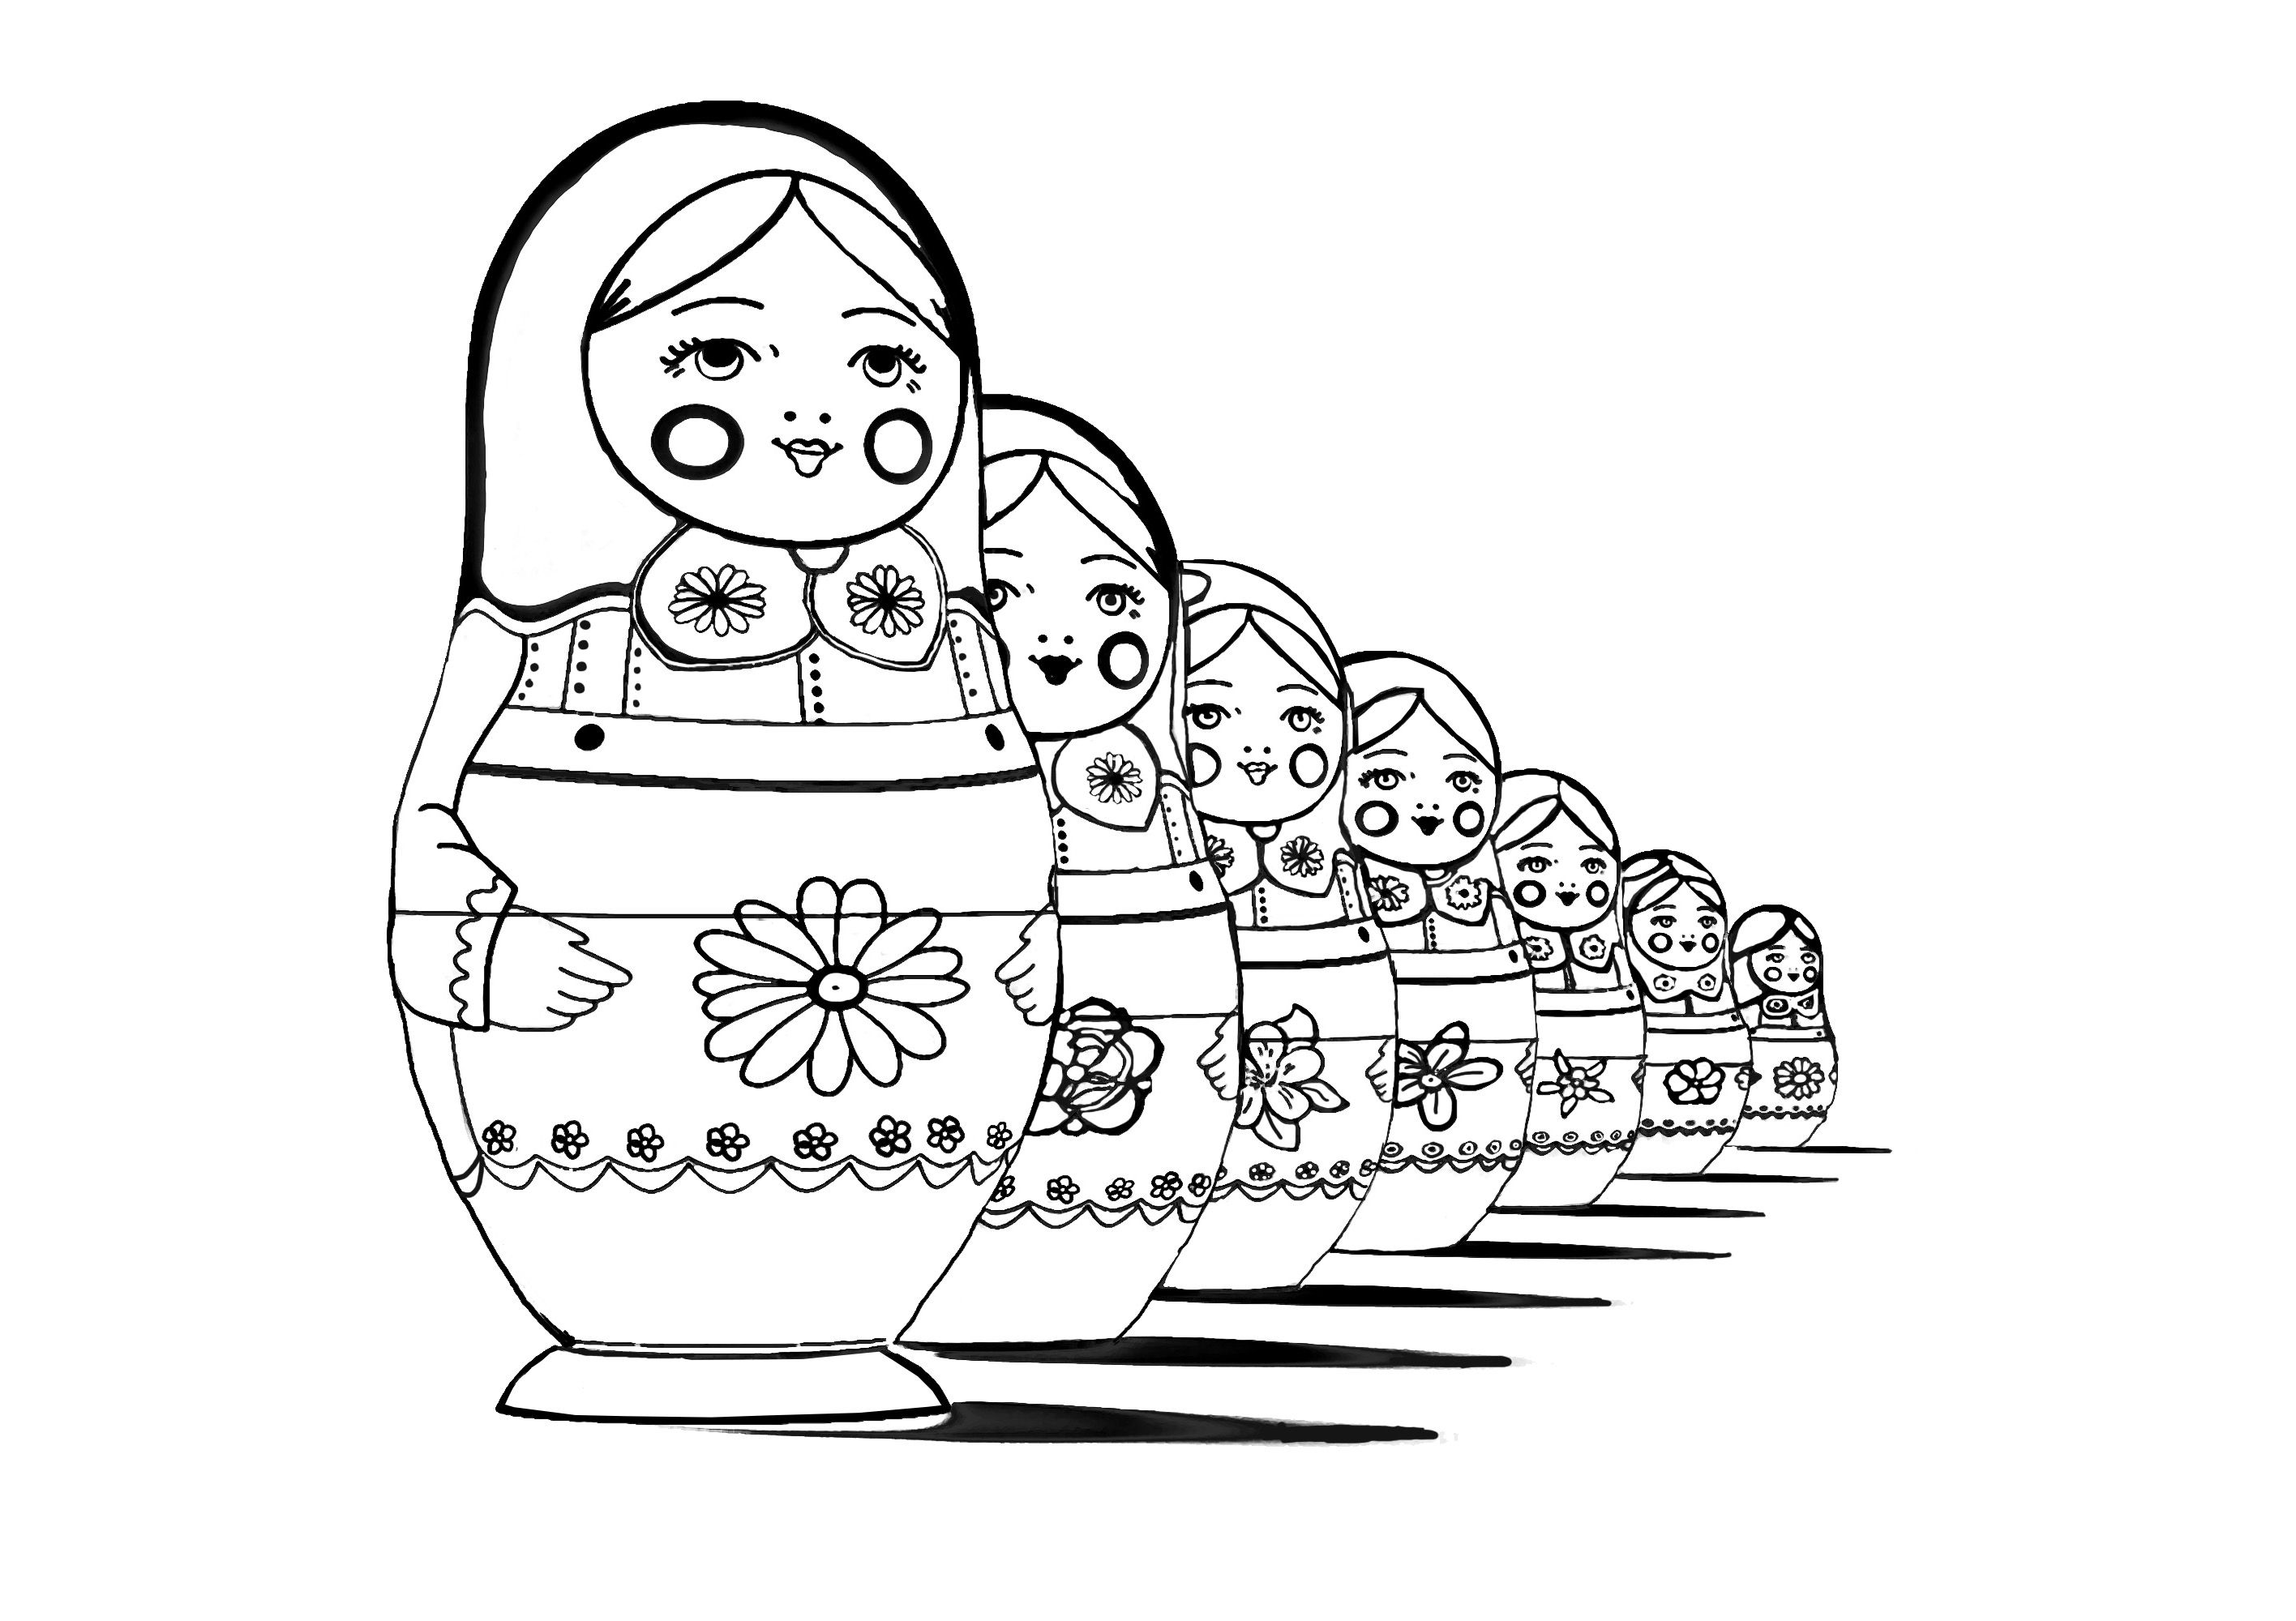 Coloring Page Adult Russian Dolls Perspective Free To Print